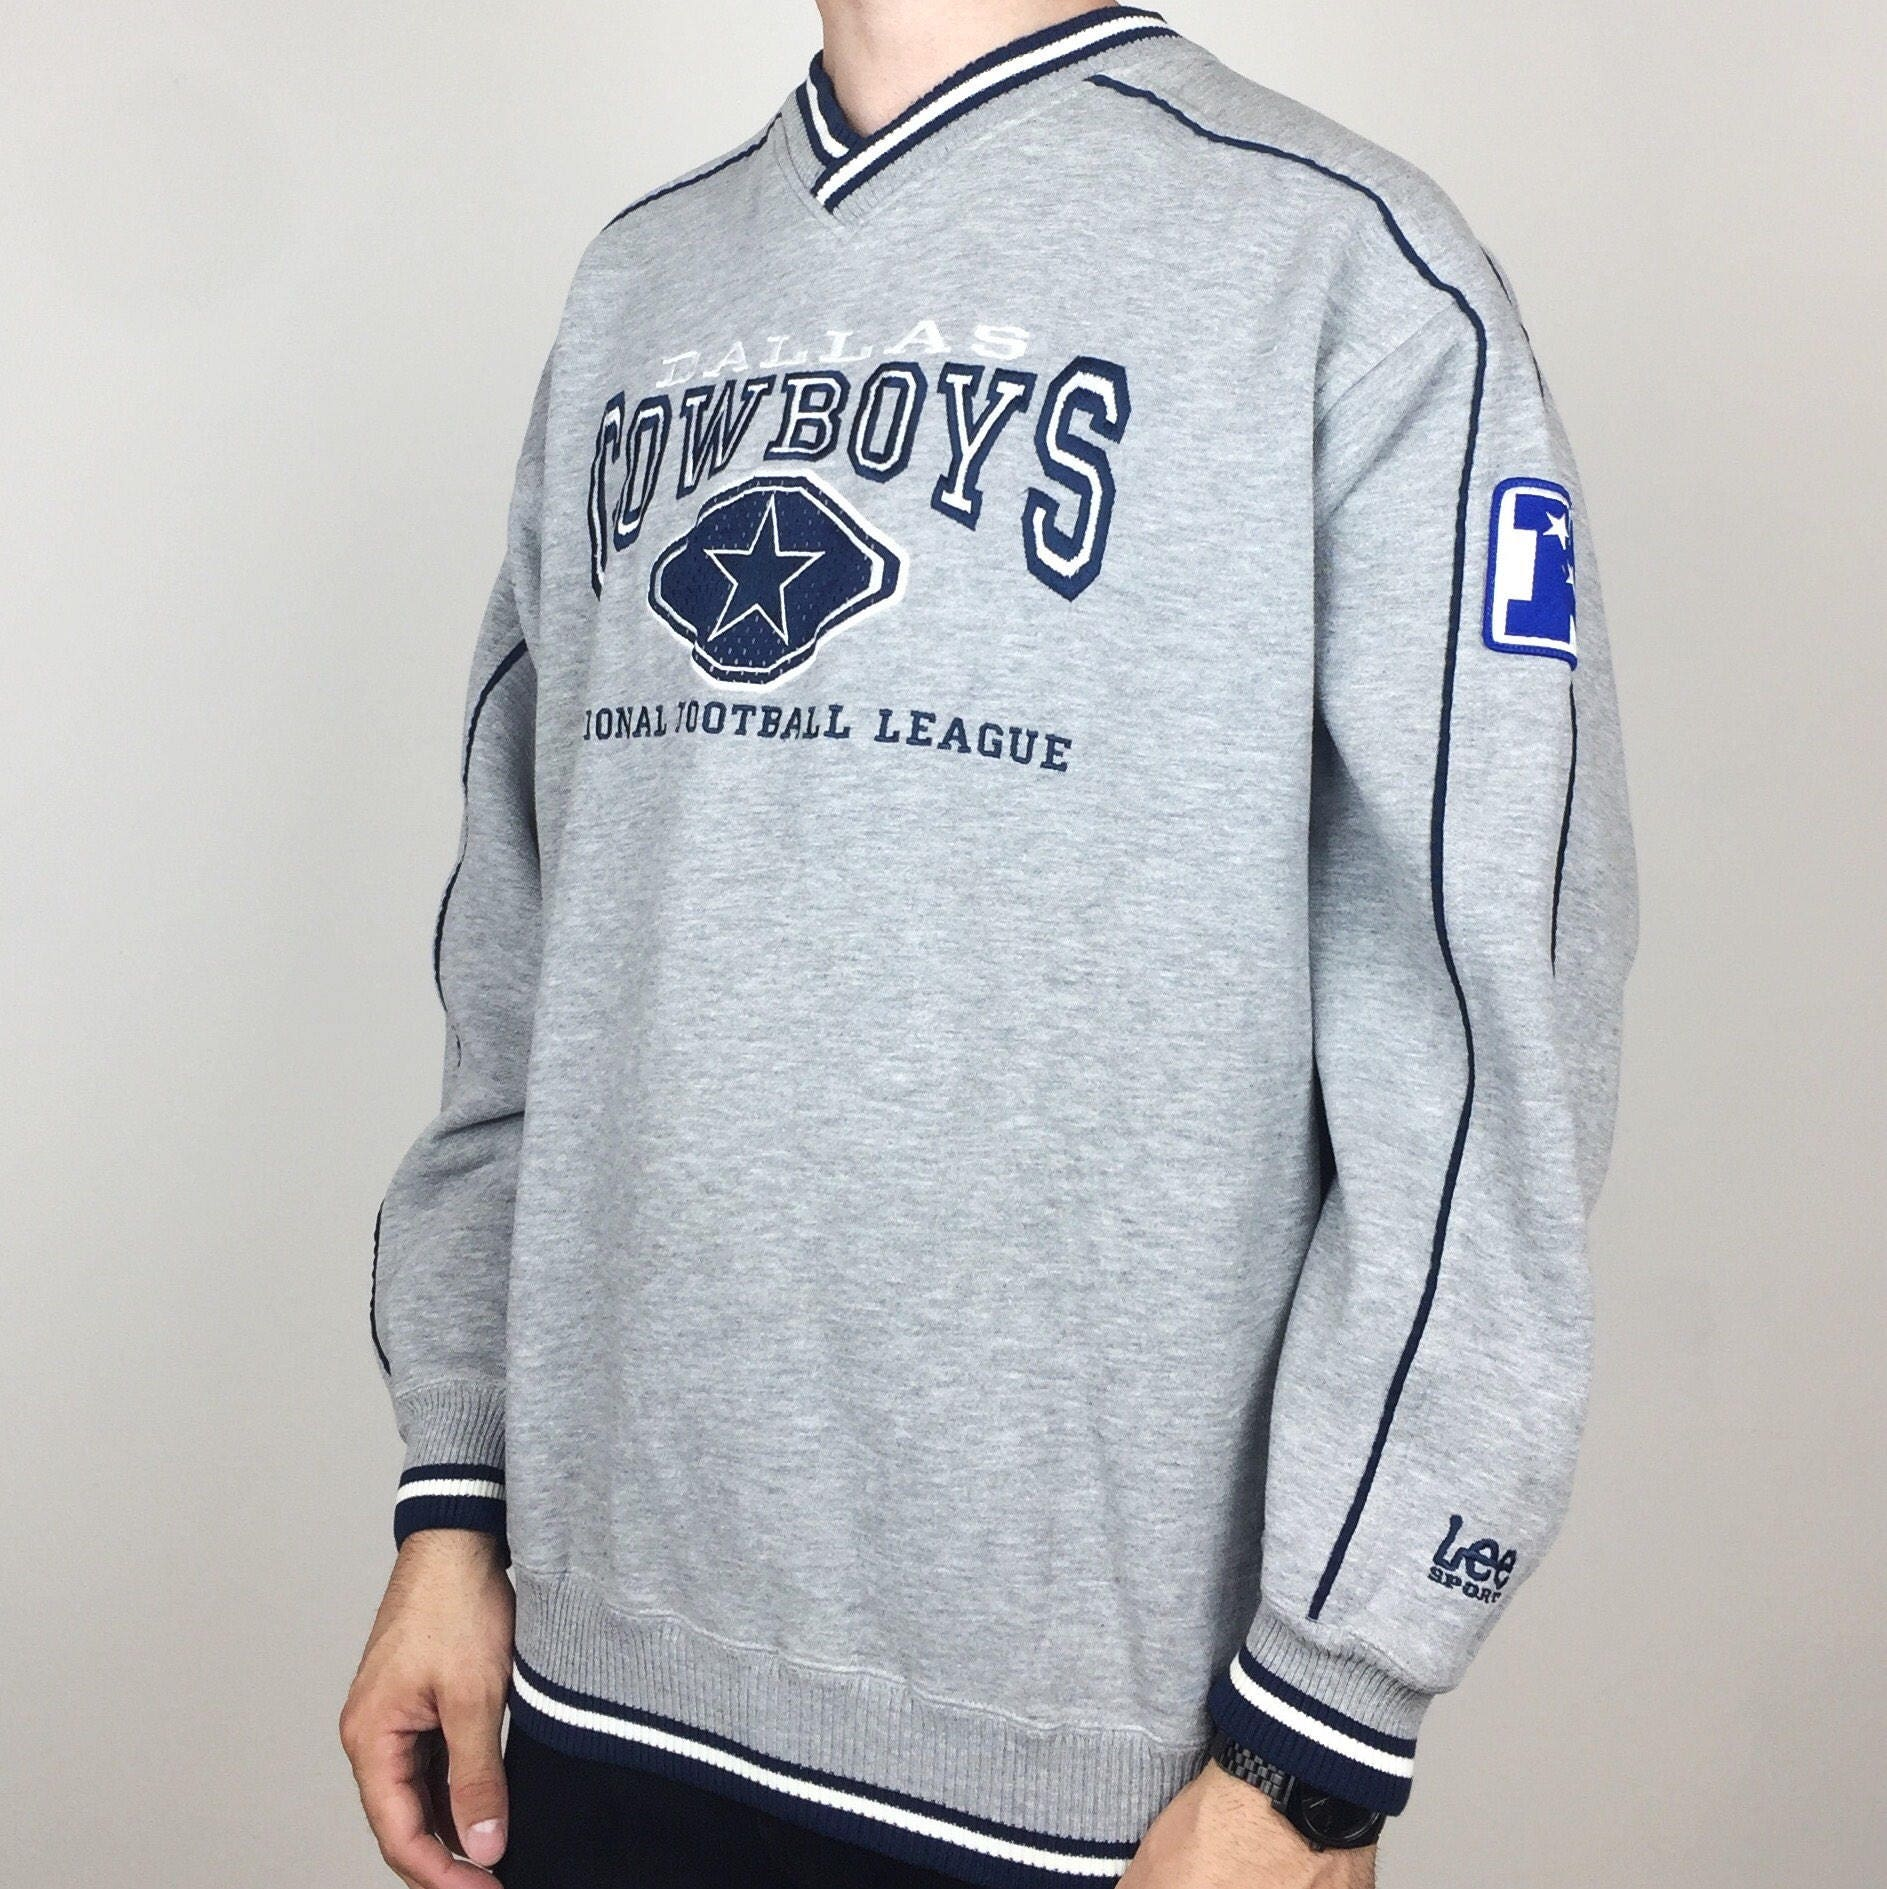 dcd394f07 Vintage 90s NFL Dallas Cowboys NFC Lee Sport embroidered football pullover  sweatshirt - Size L-XL